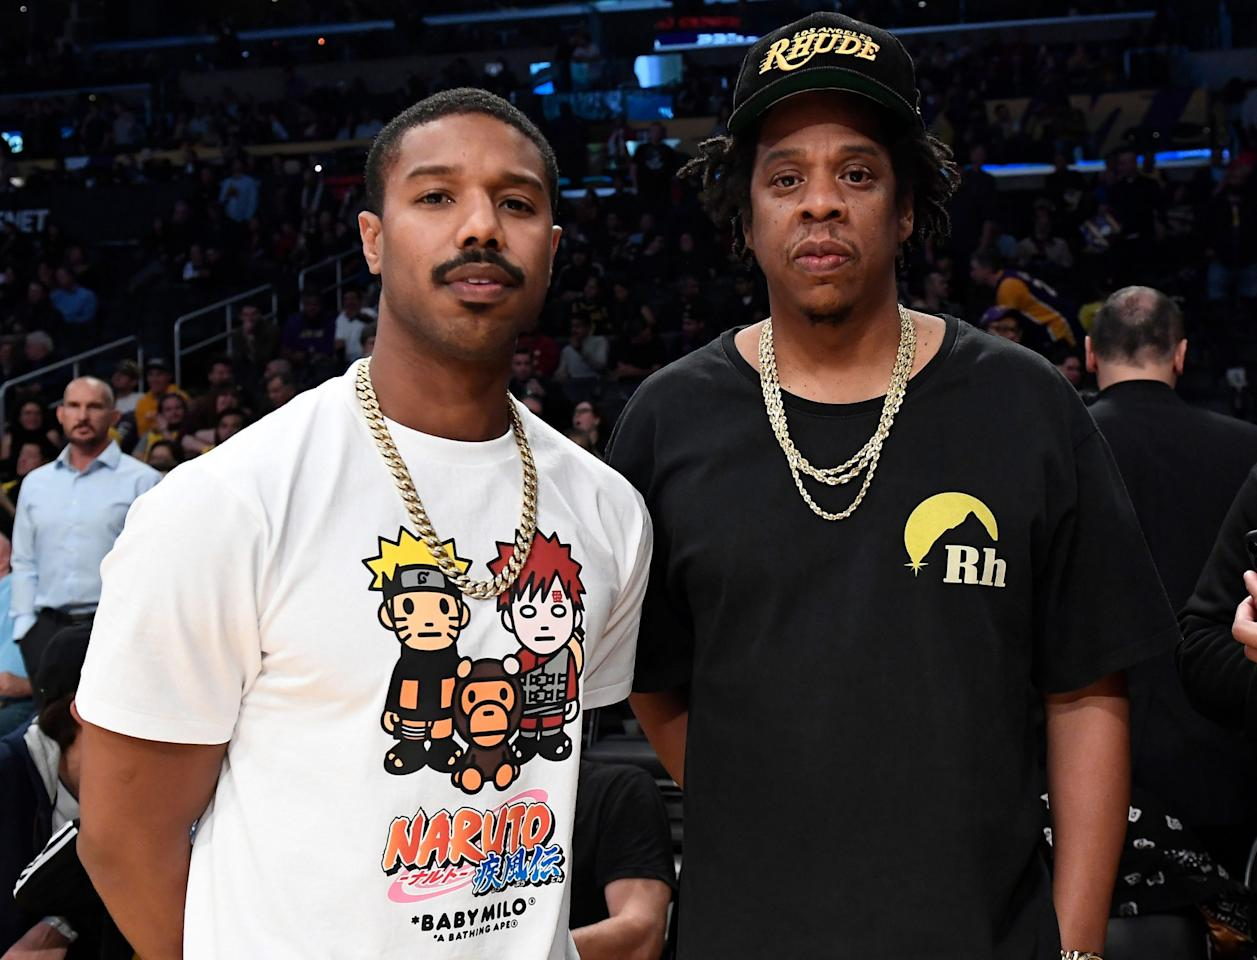 <p>Michael B. Jordan and JAY-Z meet up at the Los Angeles Lakers vs. Milwaukee Bucks basketball game at Staples Center in Los Angeles on Friday night.</p>